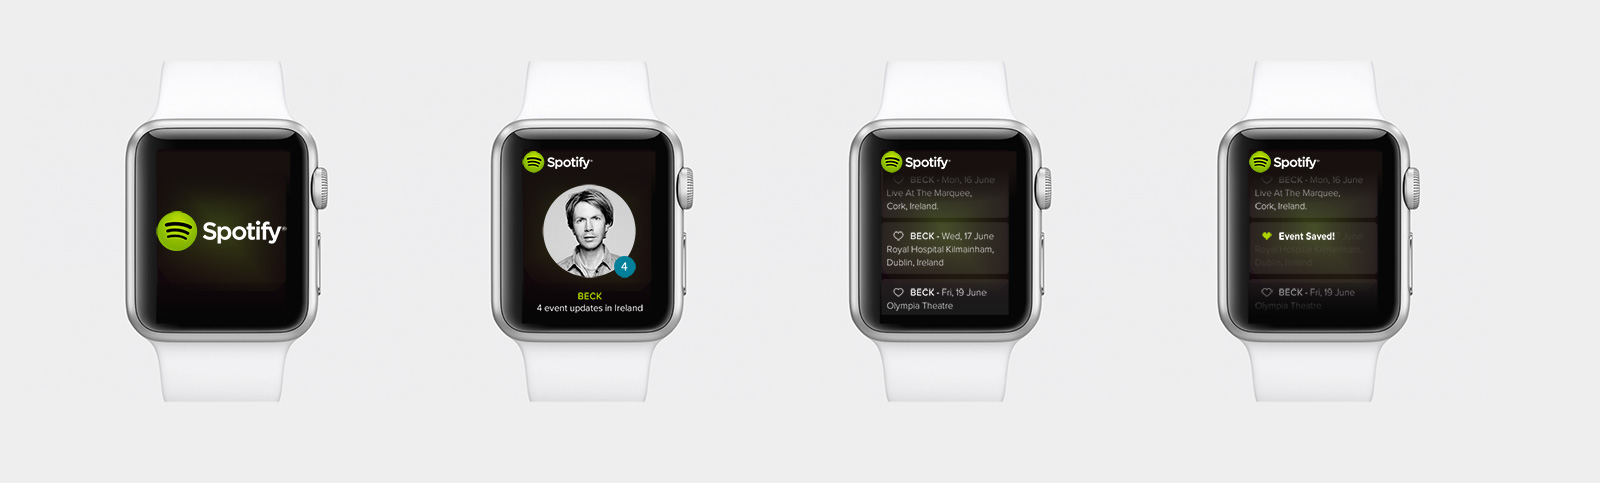 Spotify-notification-AppleWatch-initial-Screens